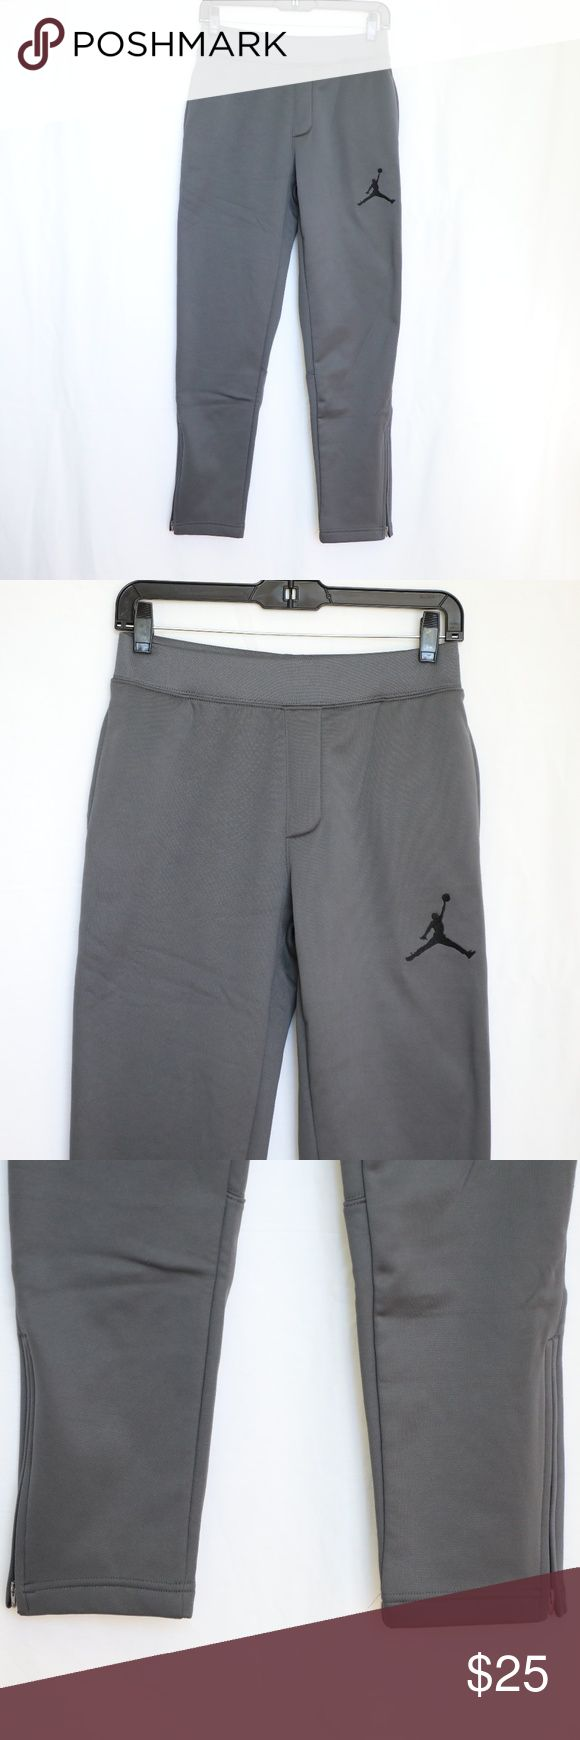 "NEW Air Jordan Boys Gray Athletic Pants  Large NEW Air Jordan Boys Gray Athletic Pants  Tapered legs Zippered side ankles Drawstring waist band Pockets 8.5"" zippered sides Large NOTE: two tiny snags in front from the price tag (last photo)  Measurements are taken with garment laying flat.  Length: 38"" Waist: 13"" unstretched Jordan Bottoms"